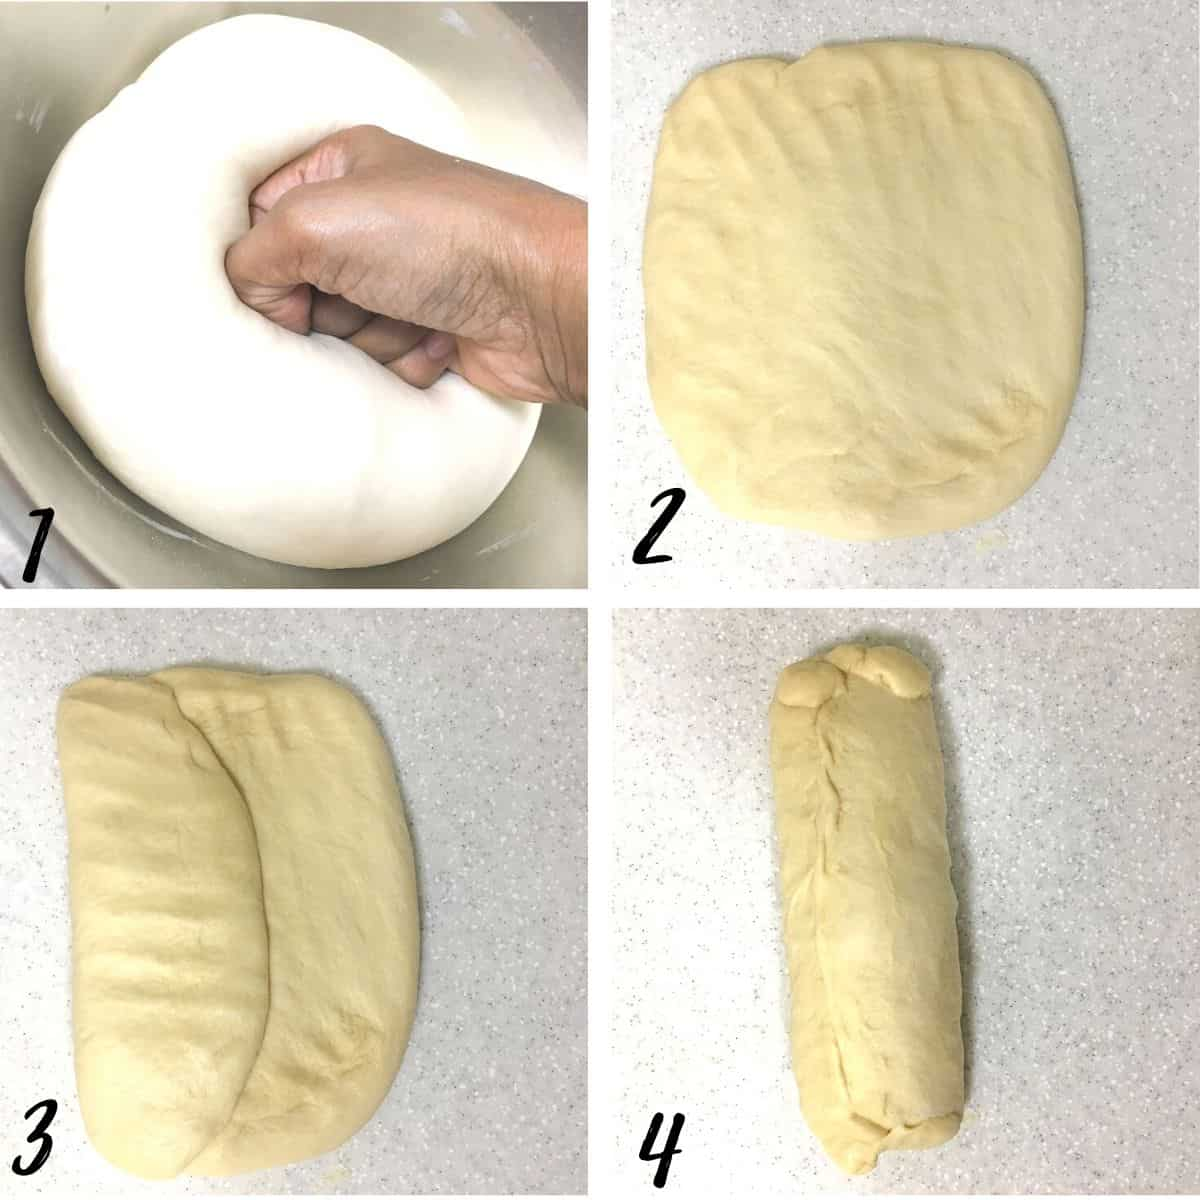 A poster of 4 images showing how to shape a bread loaf